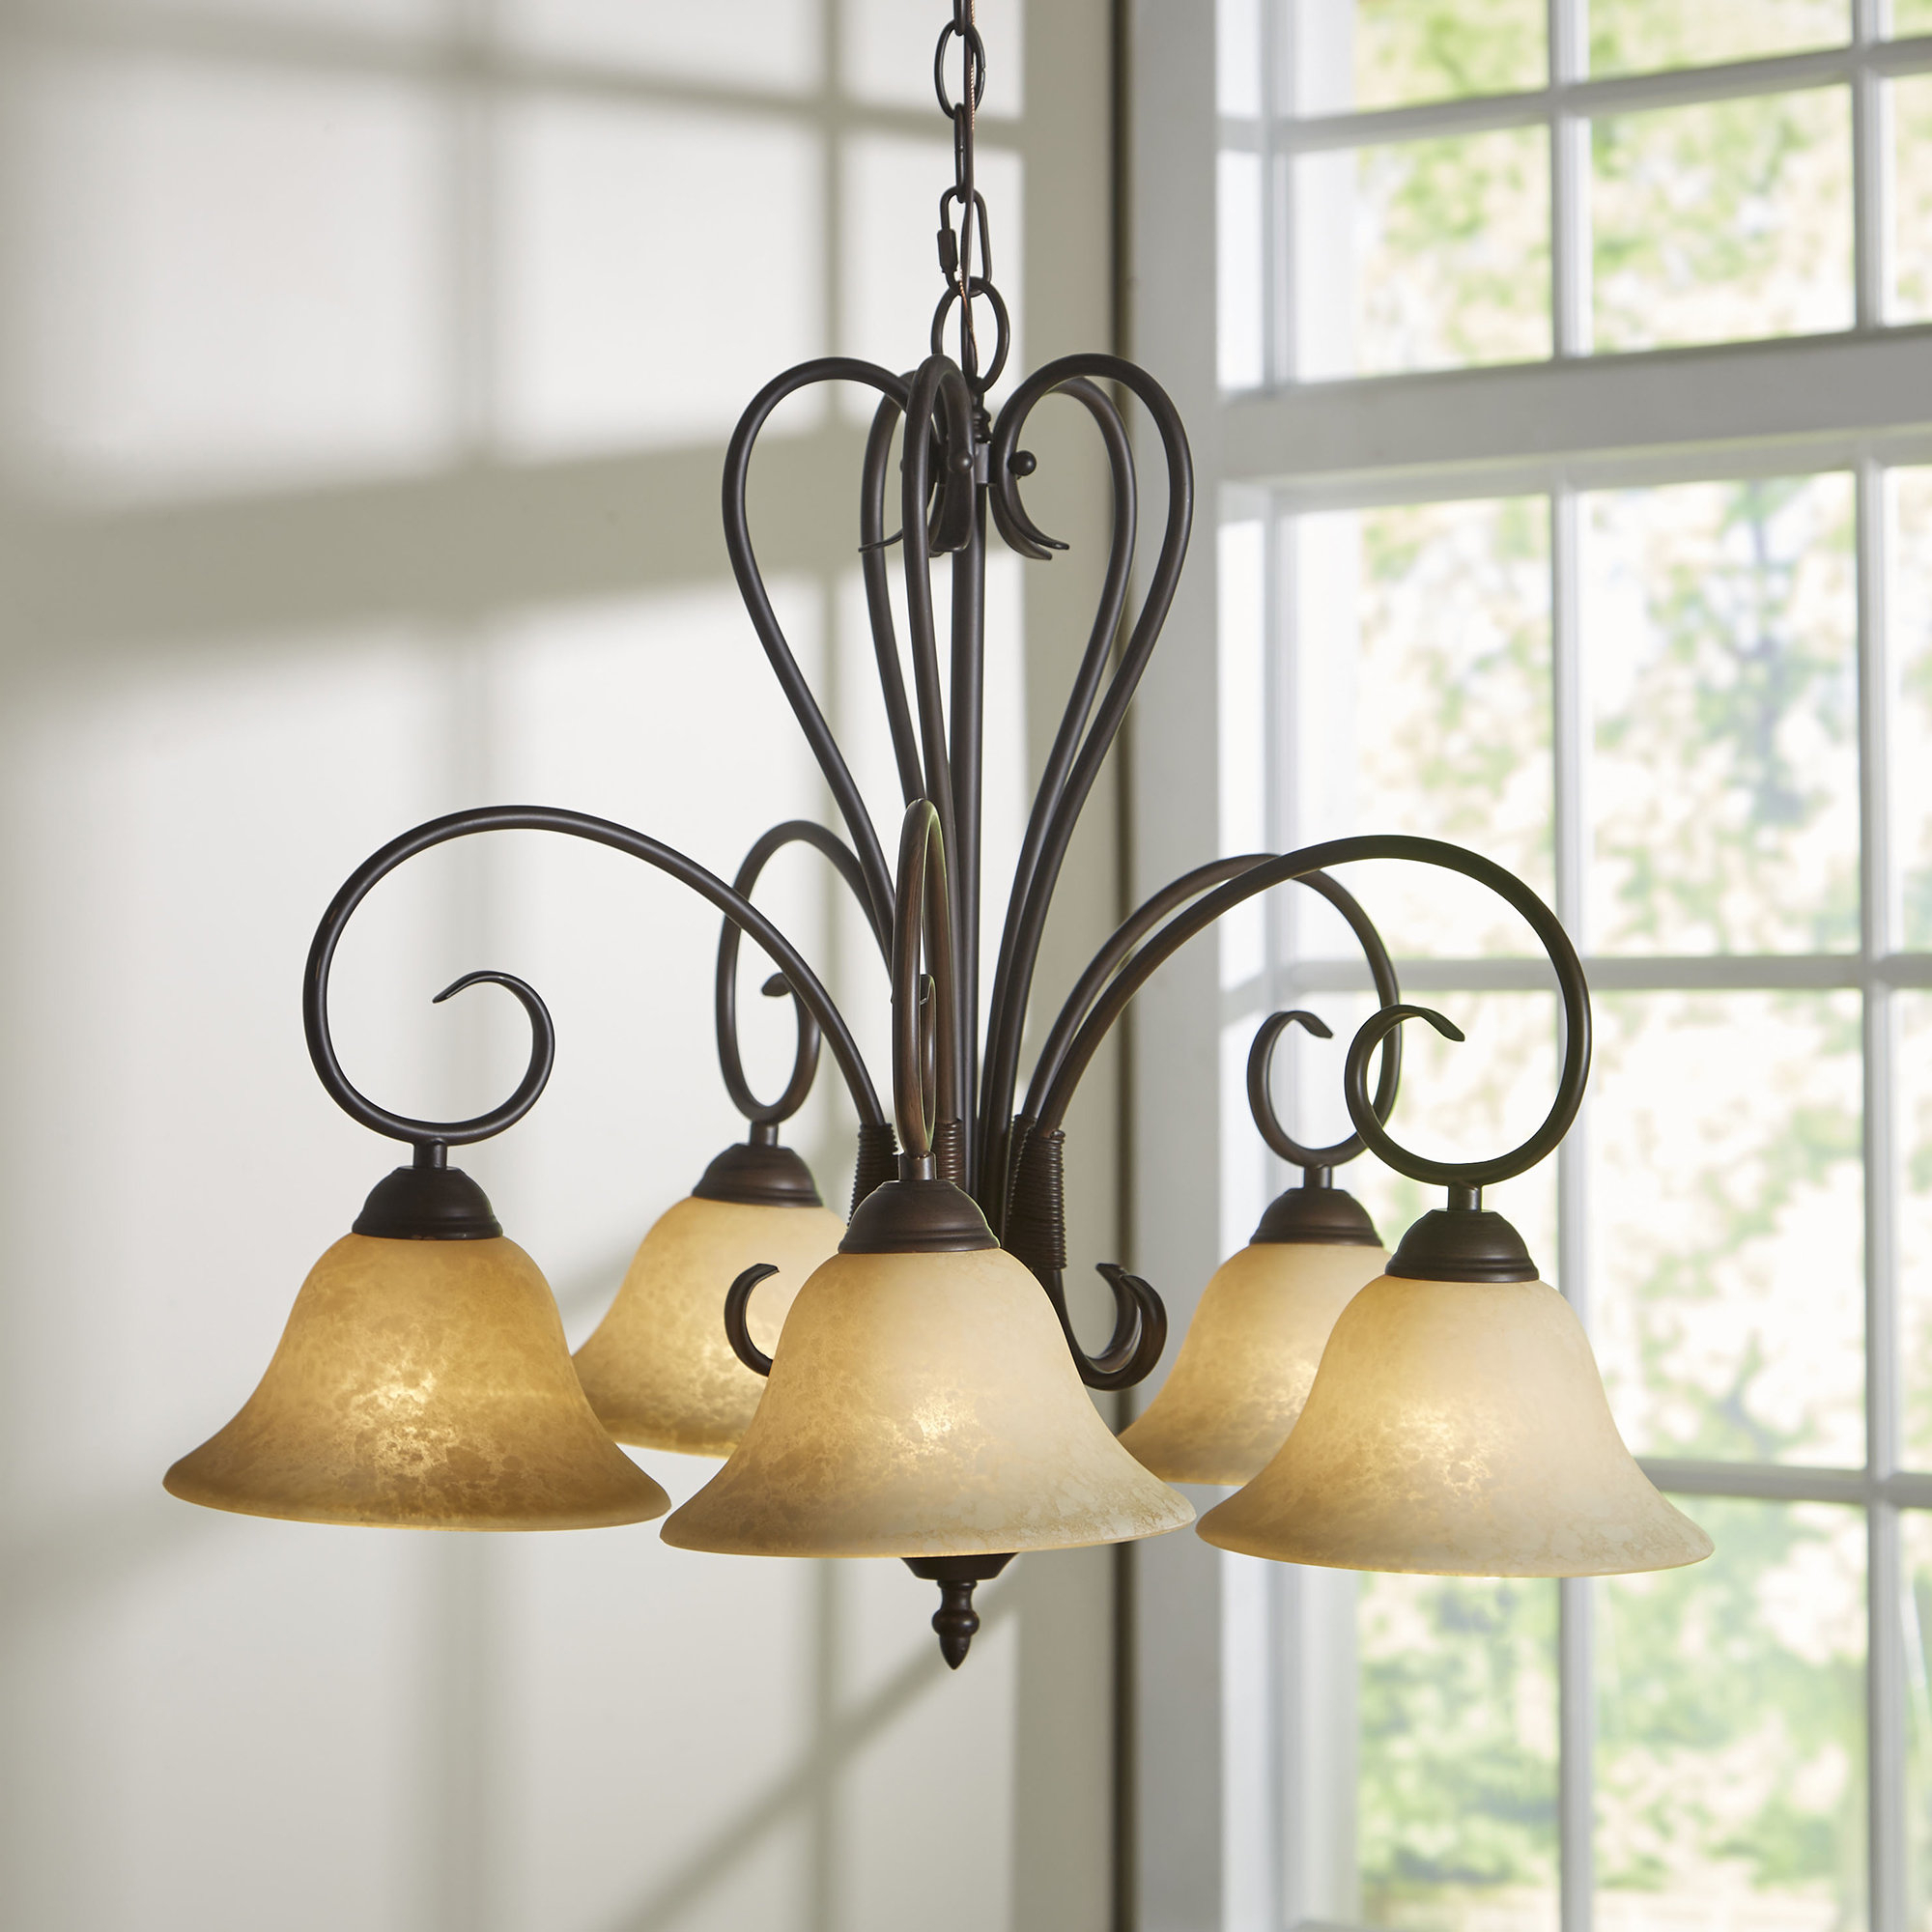 Trendy Gaines 5 Light Shaded Chandelier With Regard To Gaines 5 Light Shaded Chandeliers (View 19 of 20)